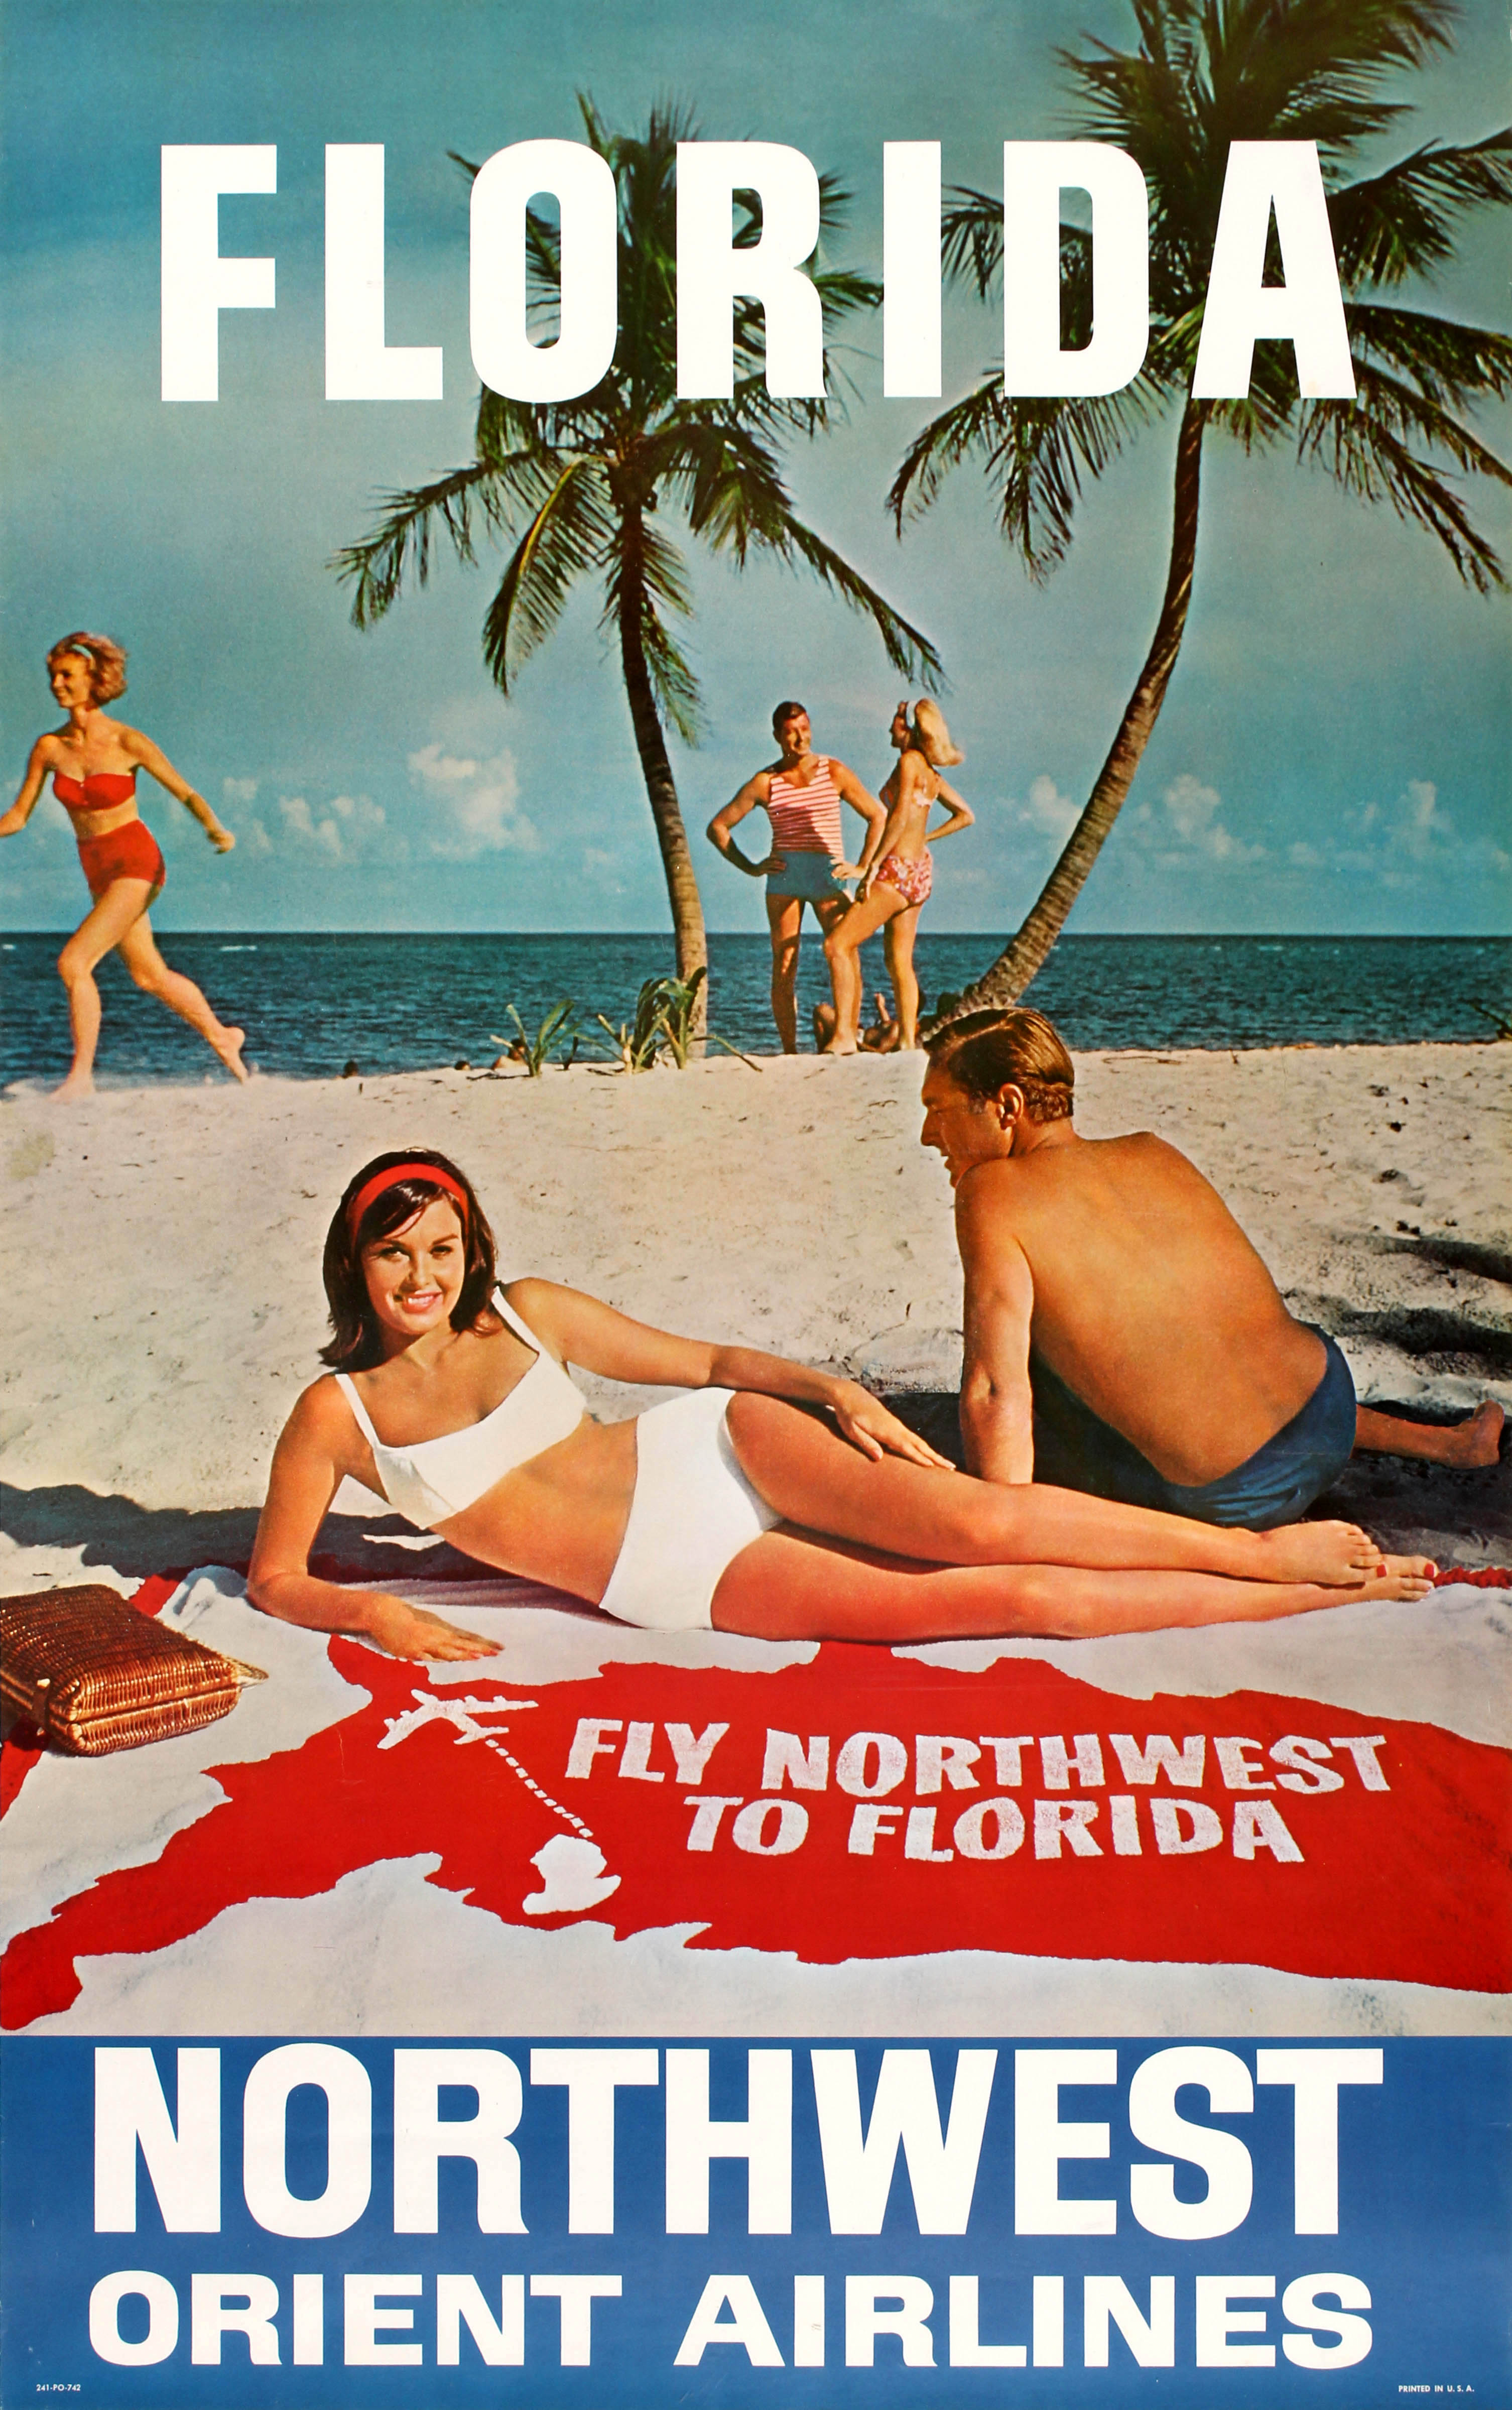 Lot 2601 - Travel Poster Florida Northwest Orient Airlines